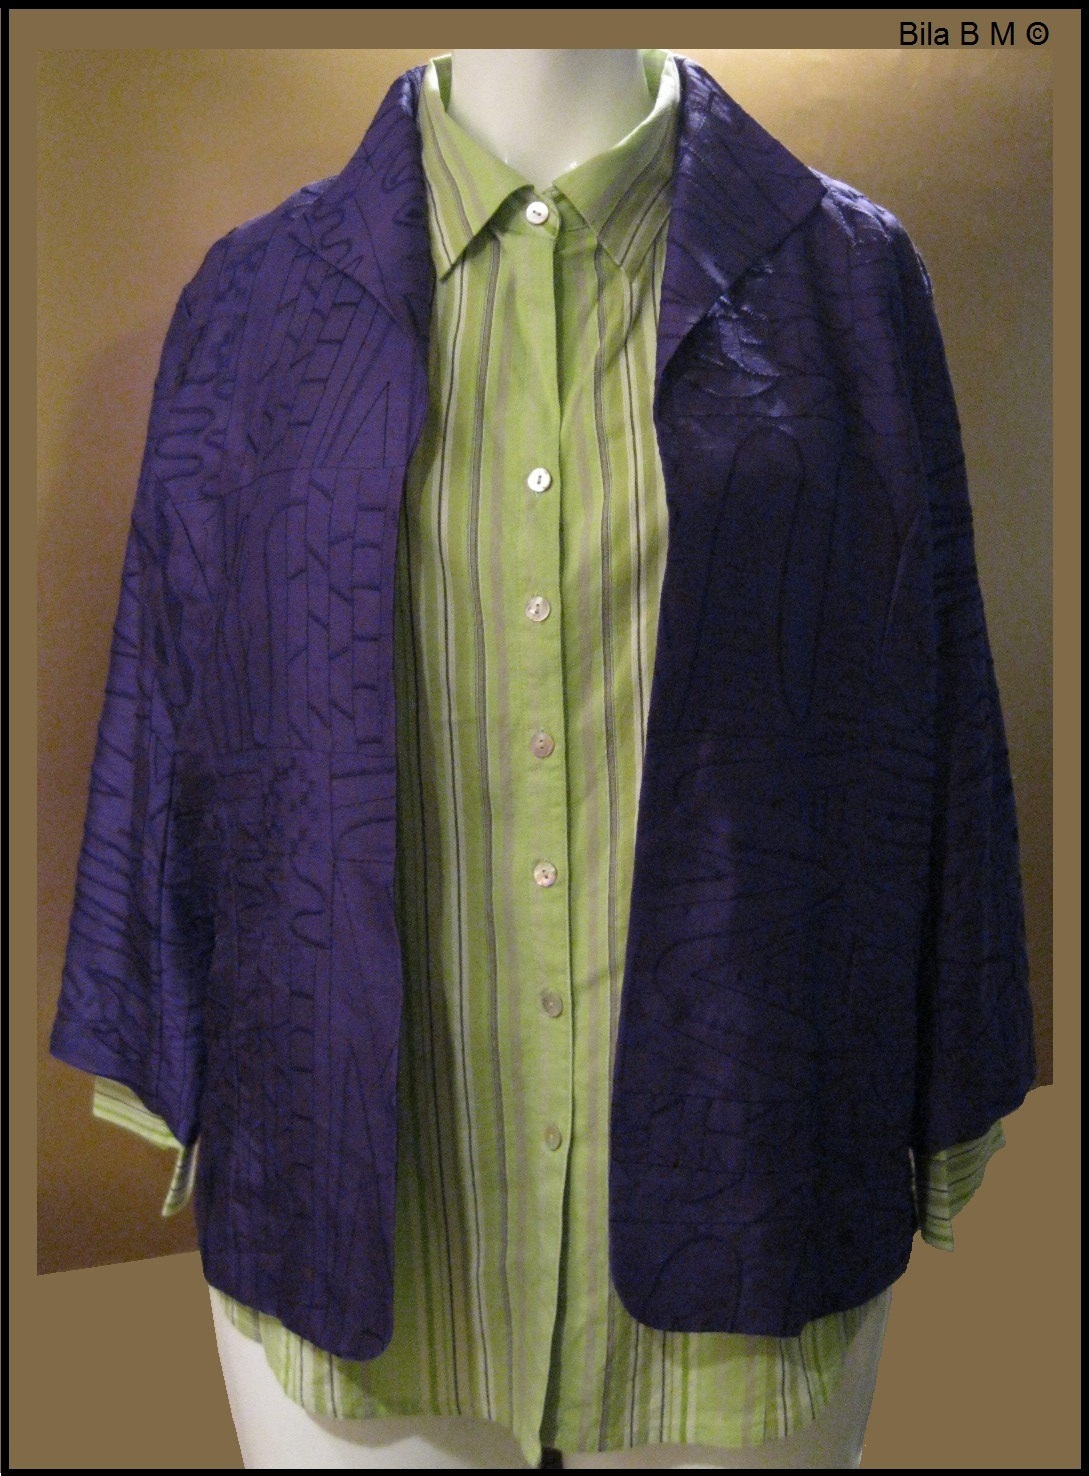 CHICO'S ALL SILK JACKET - Size 2 - Purple Embroidered Ladies Jacket